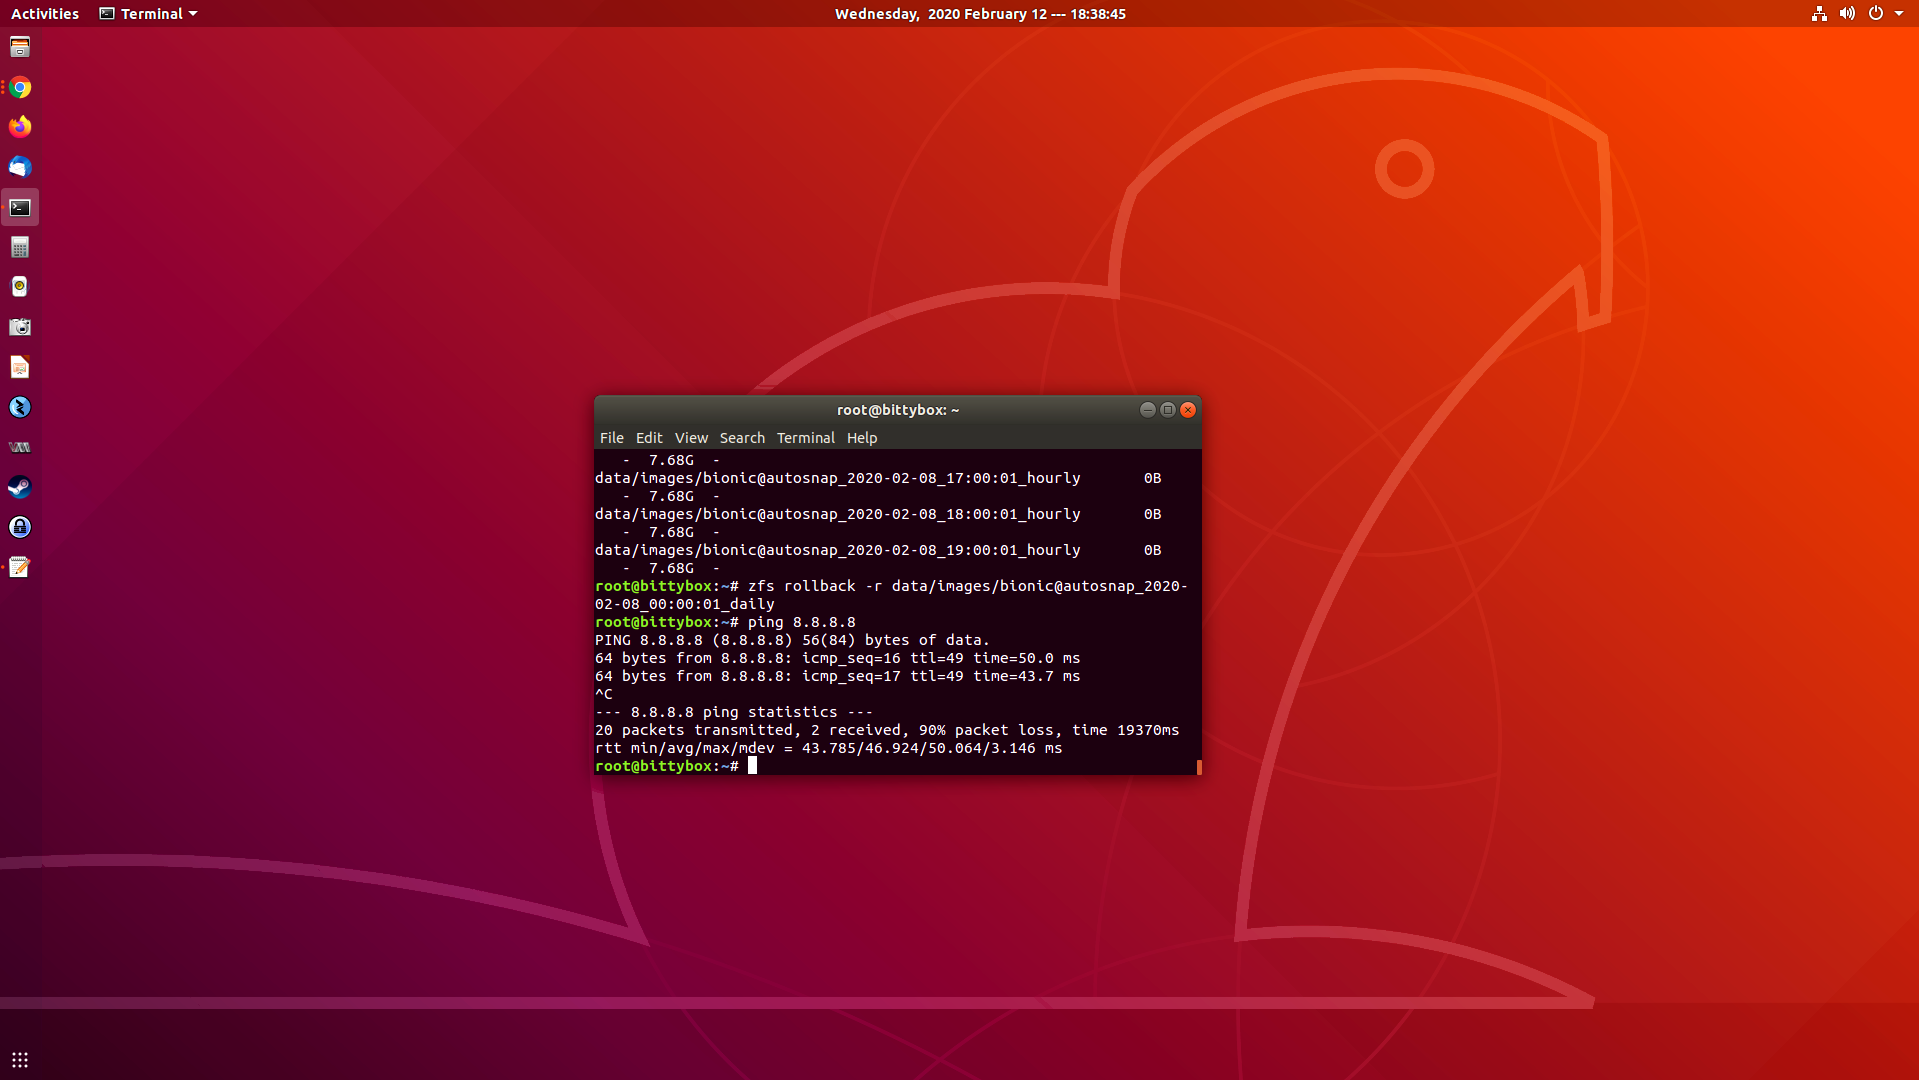 Ubuntu 18 04 4 Lts Released Wednesday Here S What S New Ars Technica